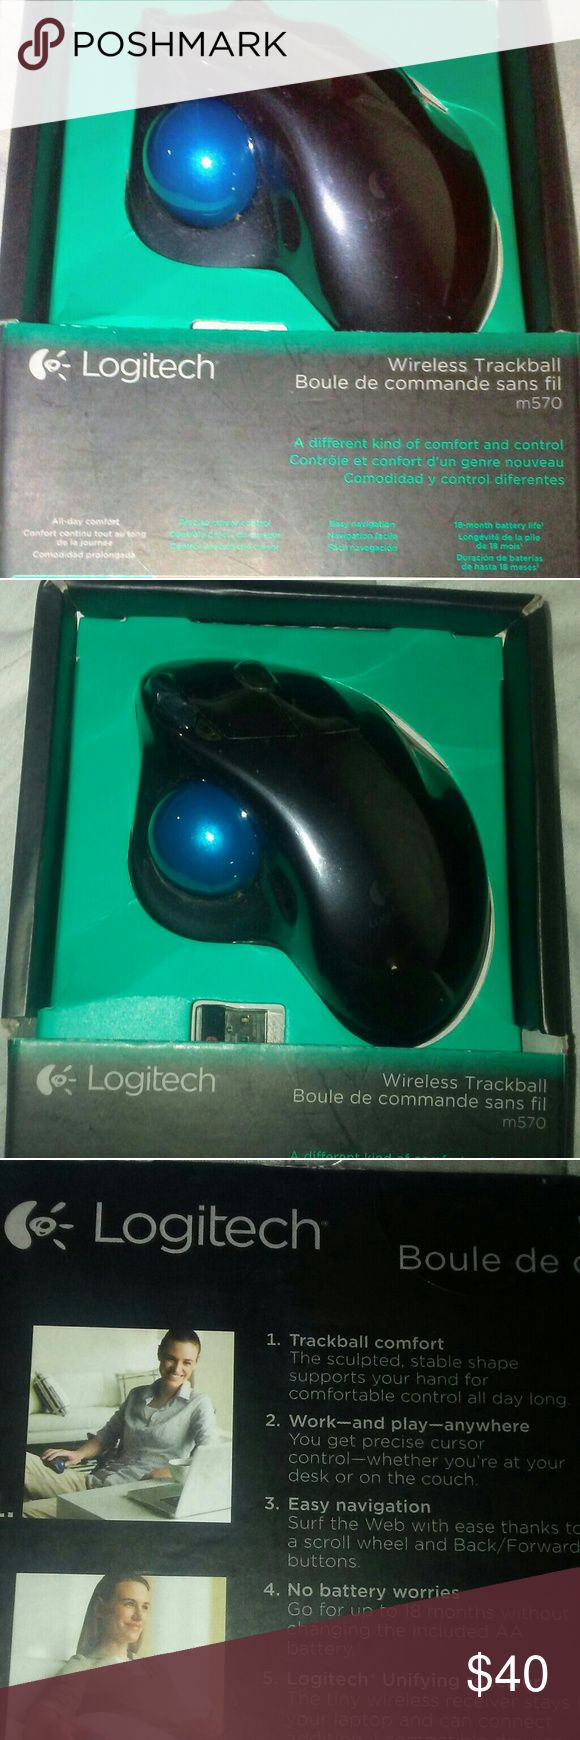 NWT Logitech wireless trackball mouse This is a great mouse its wireless and makes things like drawing or web design and even web surfing so much easier, it does not need a mouse pad to work. And its brand new in box. logitech Other